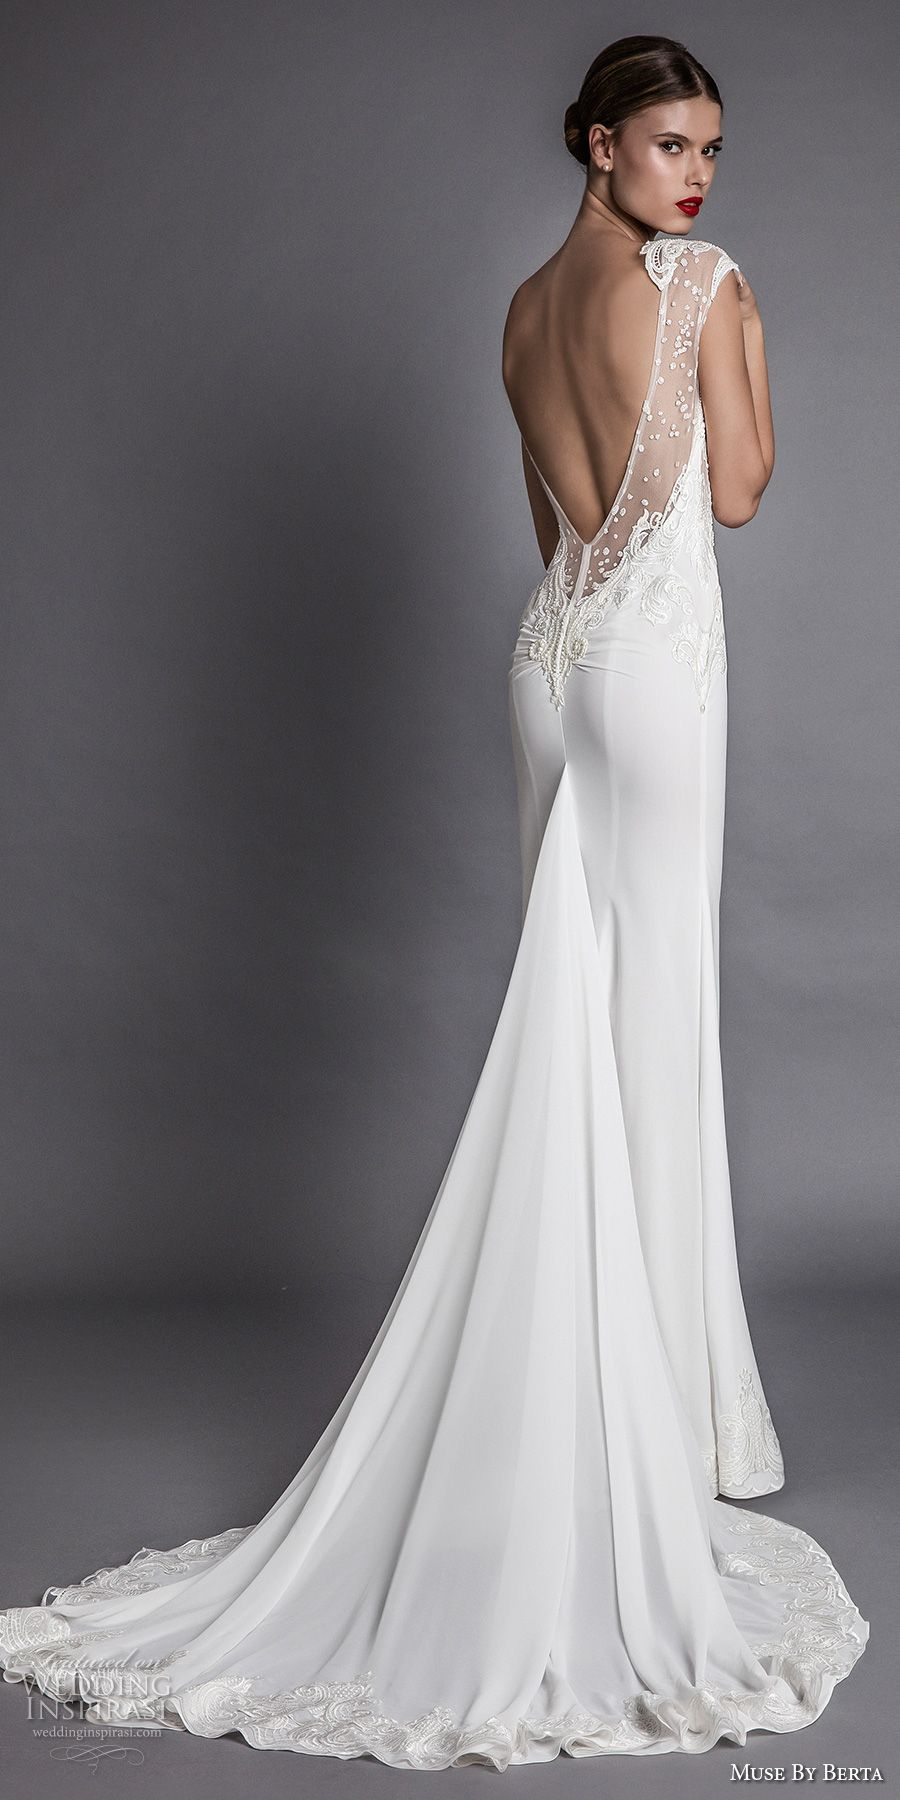 muse berta fall 2017 bridal cap sleeeves deep plunging v neckline heavily embroidered bodice elegant sexy sheath wedding dress open low back chapel train (aisha) bv -- Muse by Berta Fall 2017 Wedding Dresses